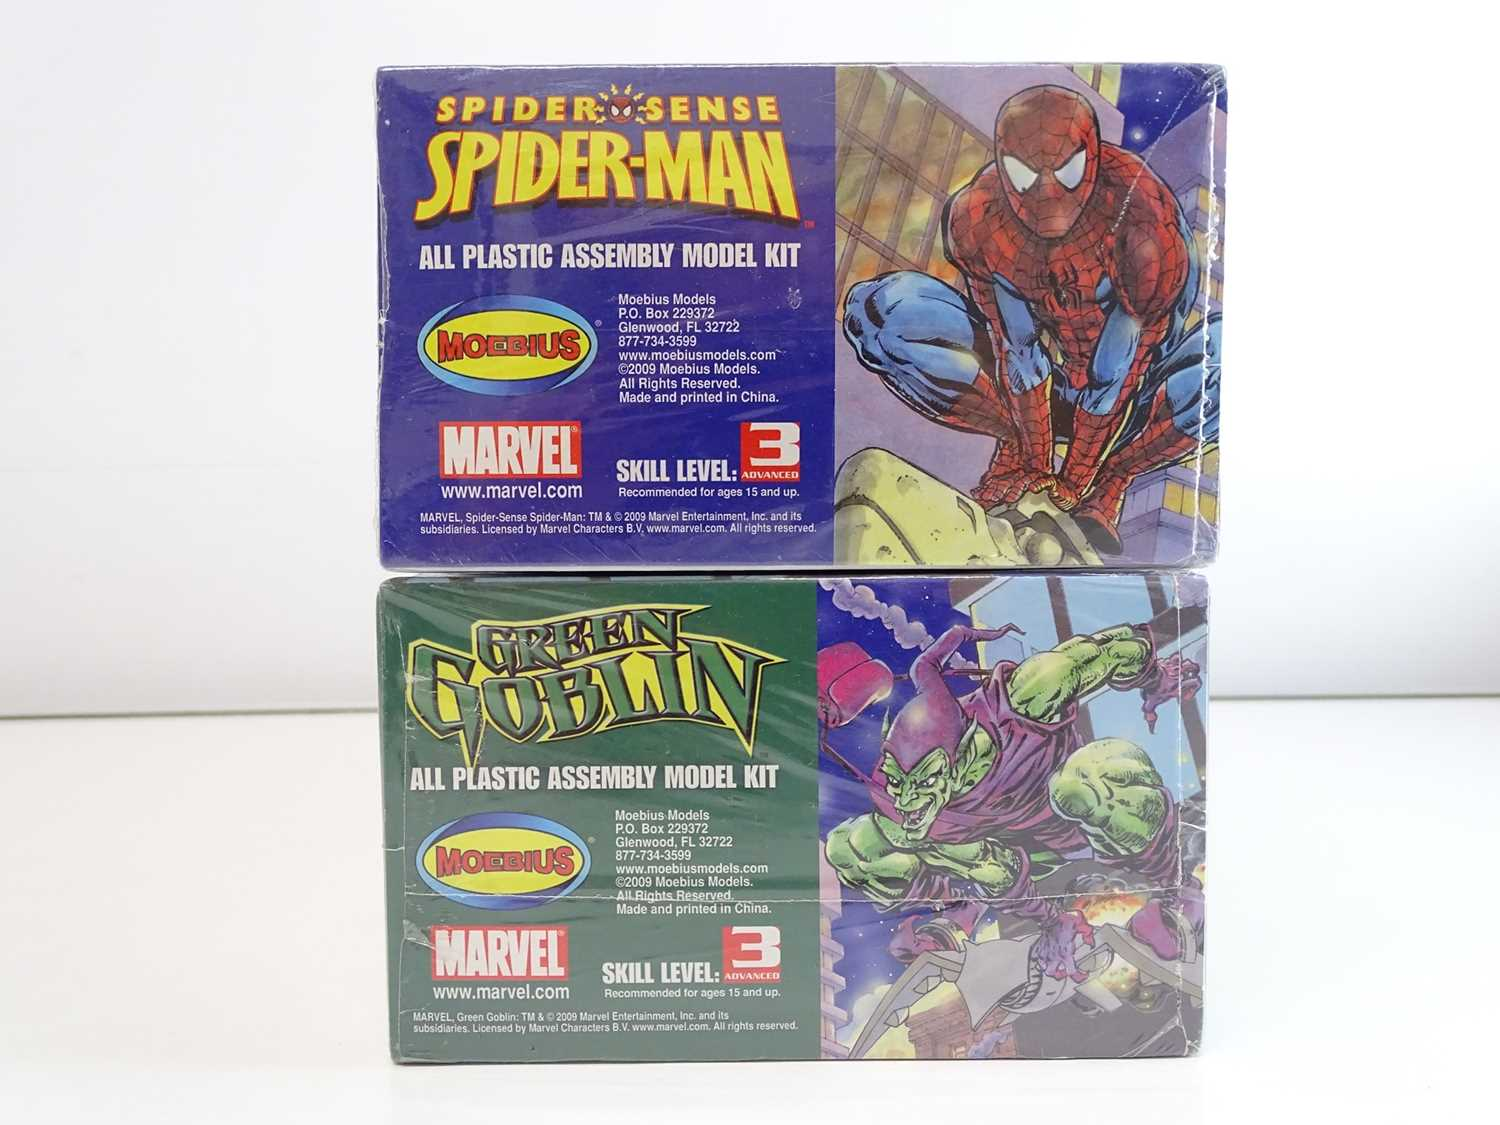 SPIDER-MAN & GREEN GOBLIN MOEBIUS MODEL KITS (2 in Lot) - (2009) Both model kits are unmade and - Image 2 of 2